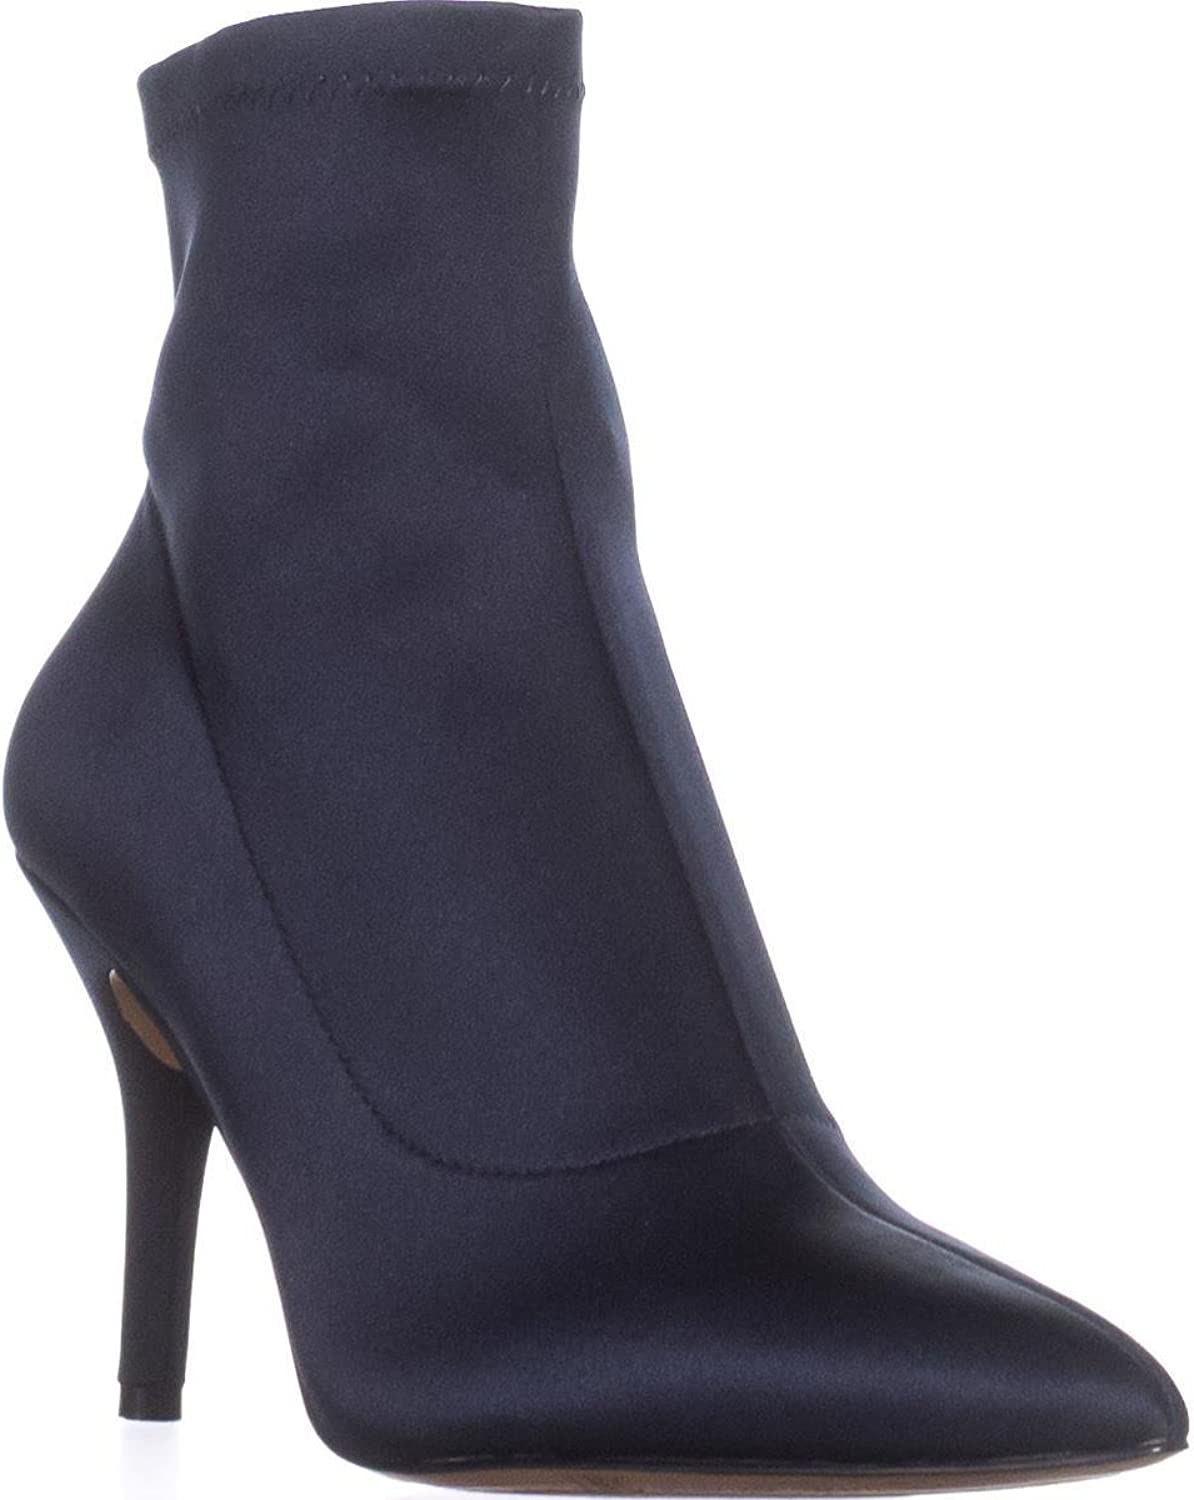 I35 Zete Pull-On Ankle Booties, Storm bluee